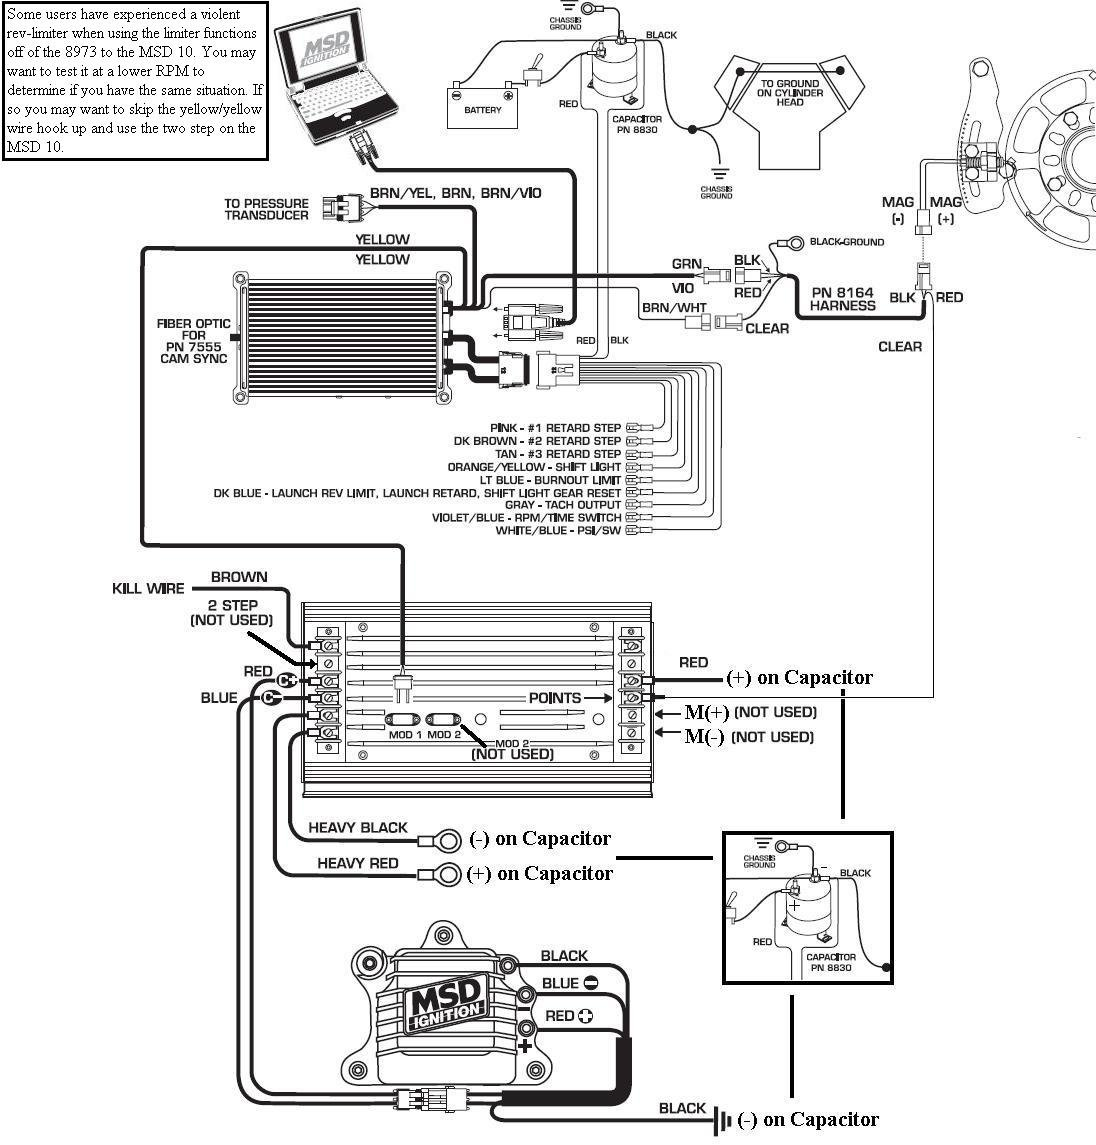 msd aln wiring diagram schematics and wiring diagrams mustang ii work msd installation